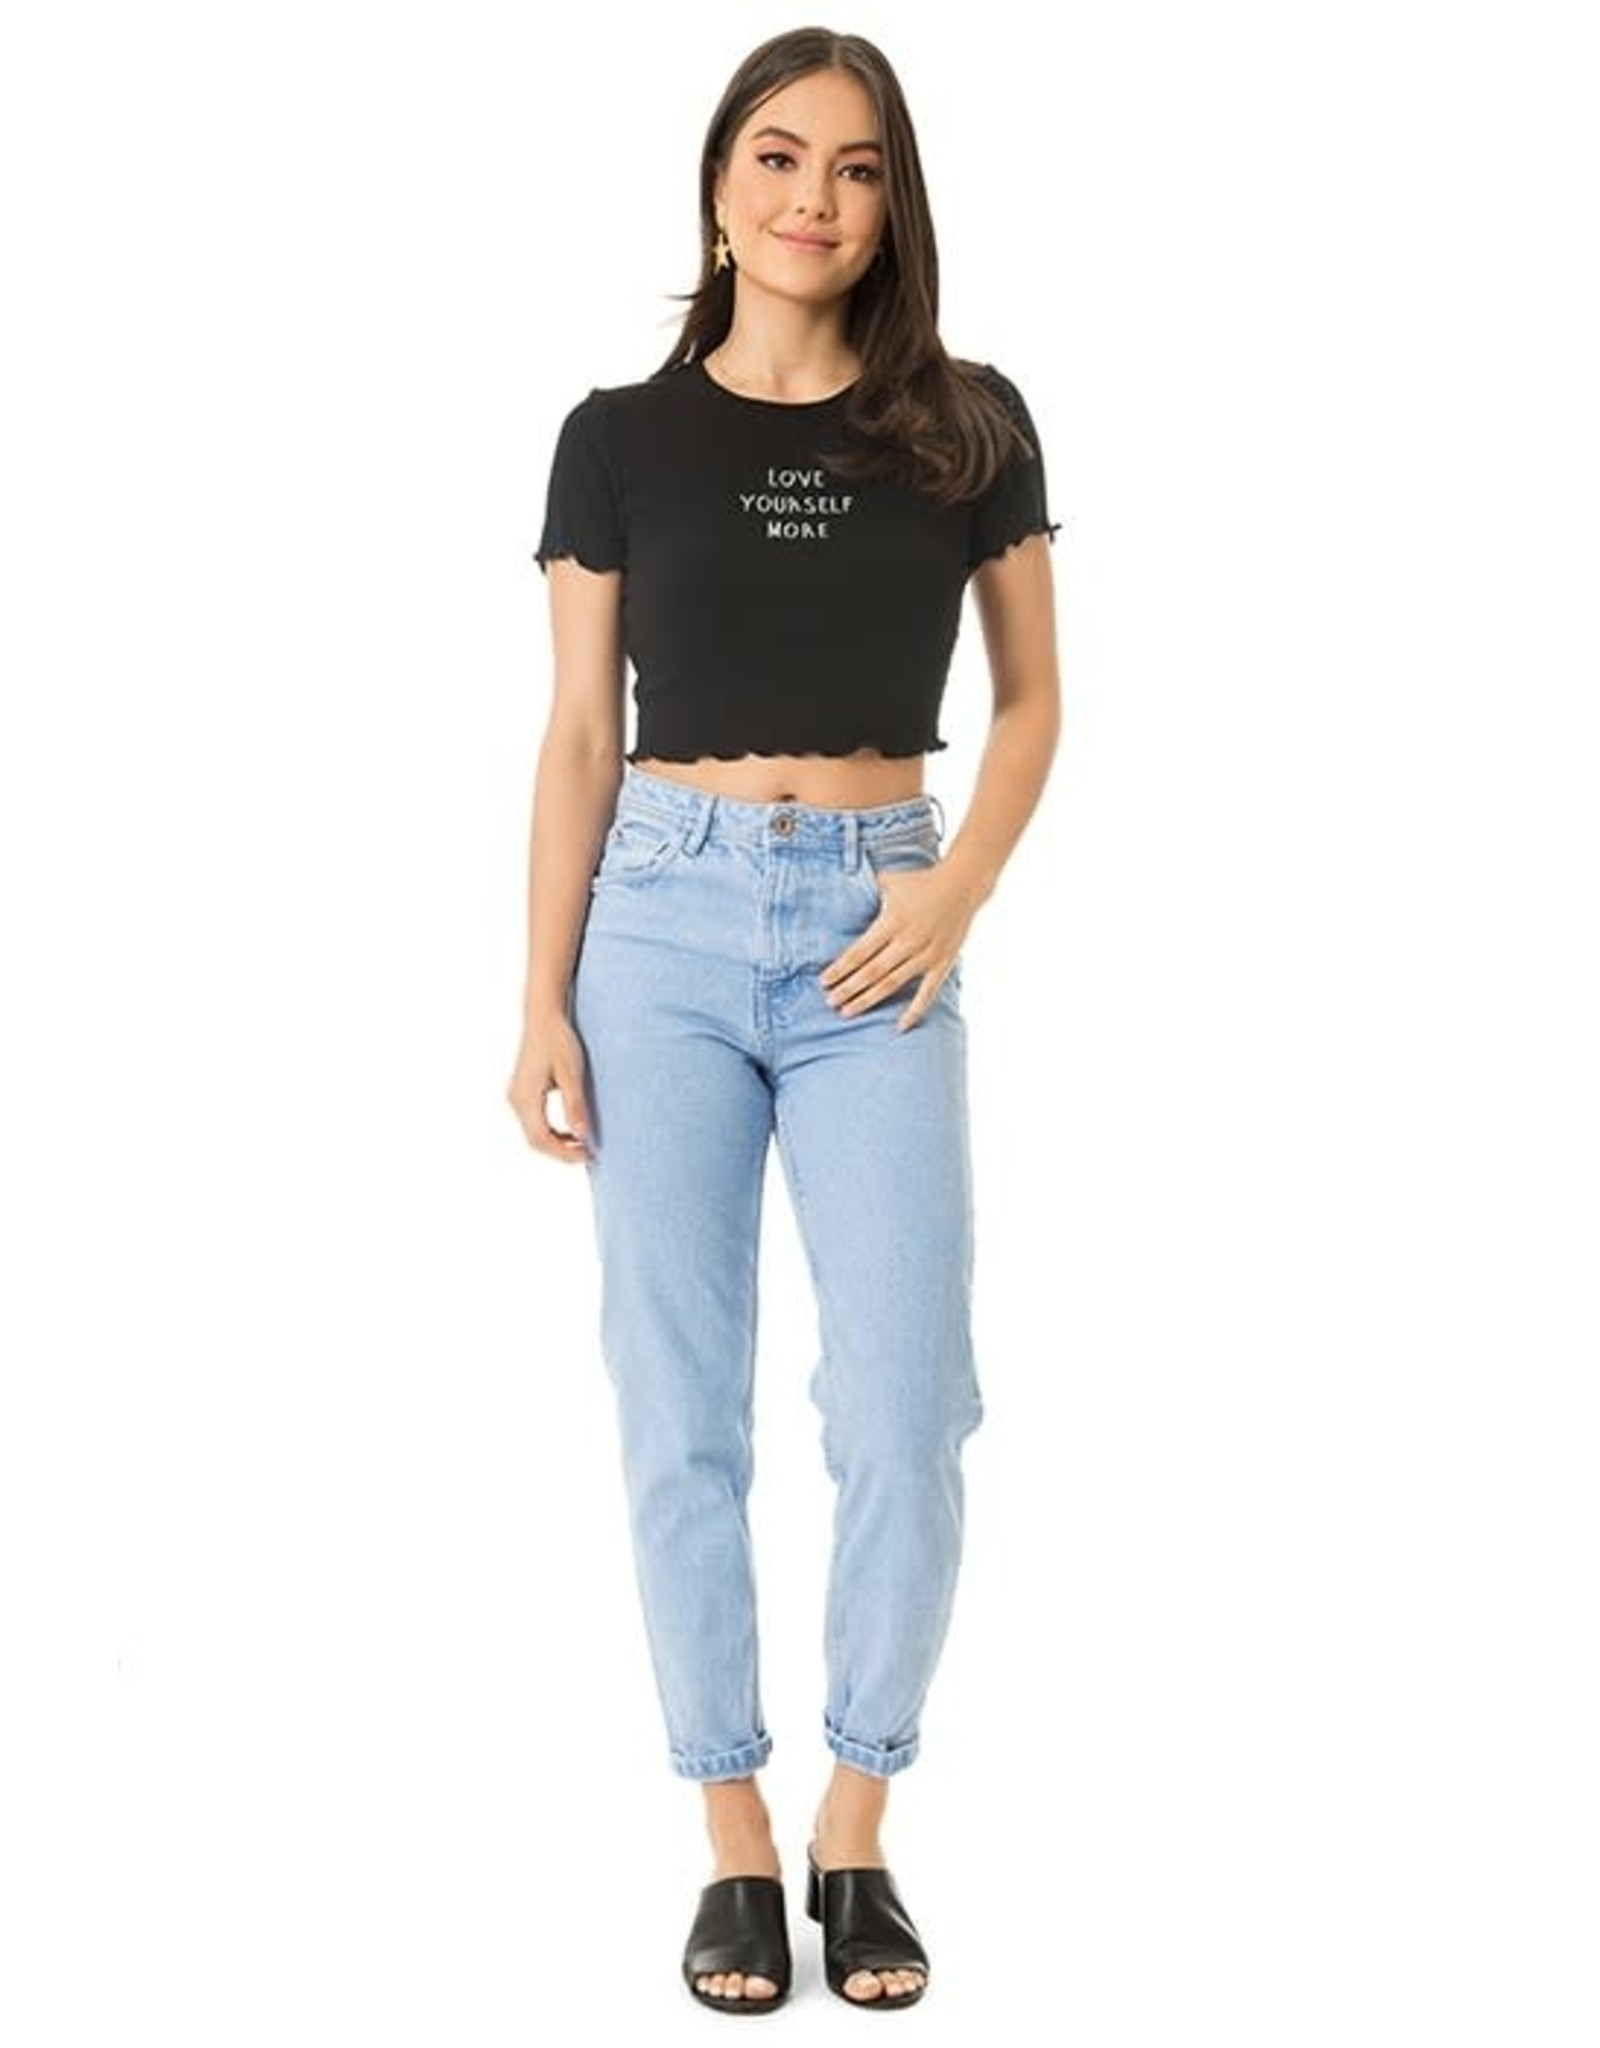 Love Yourself More Top